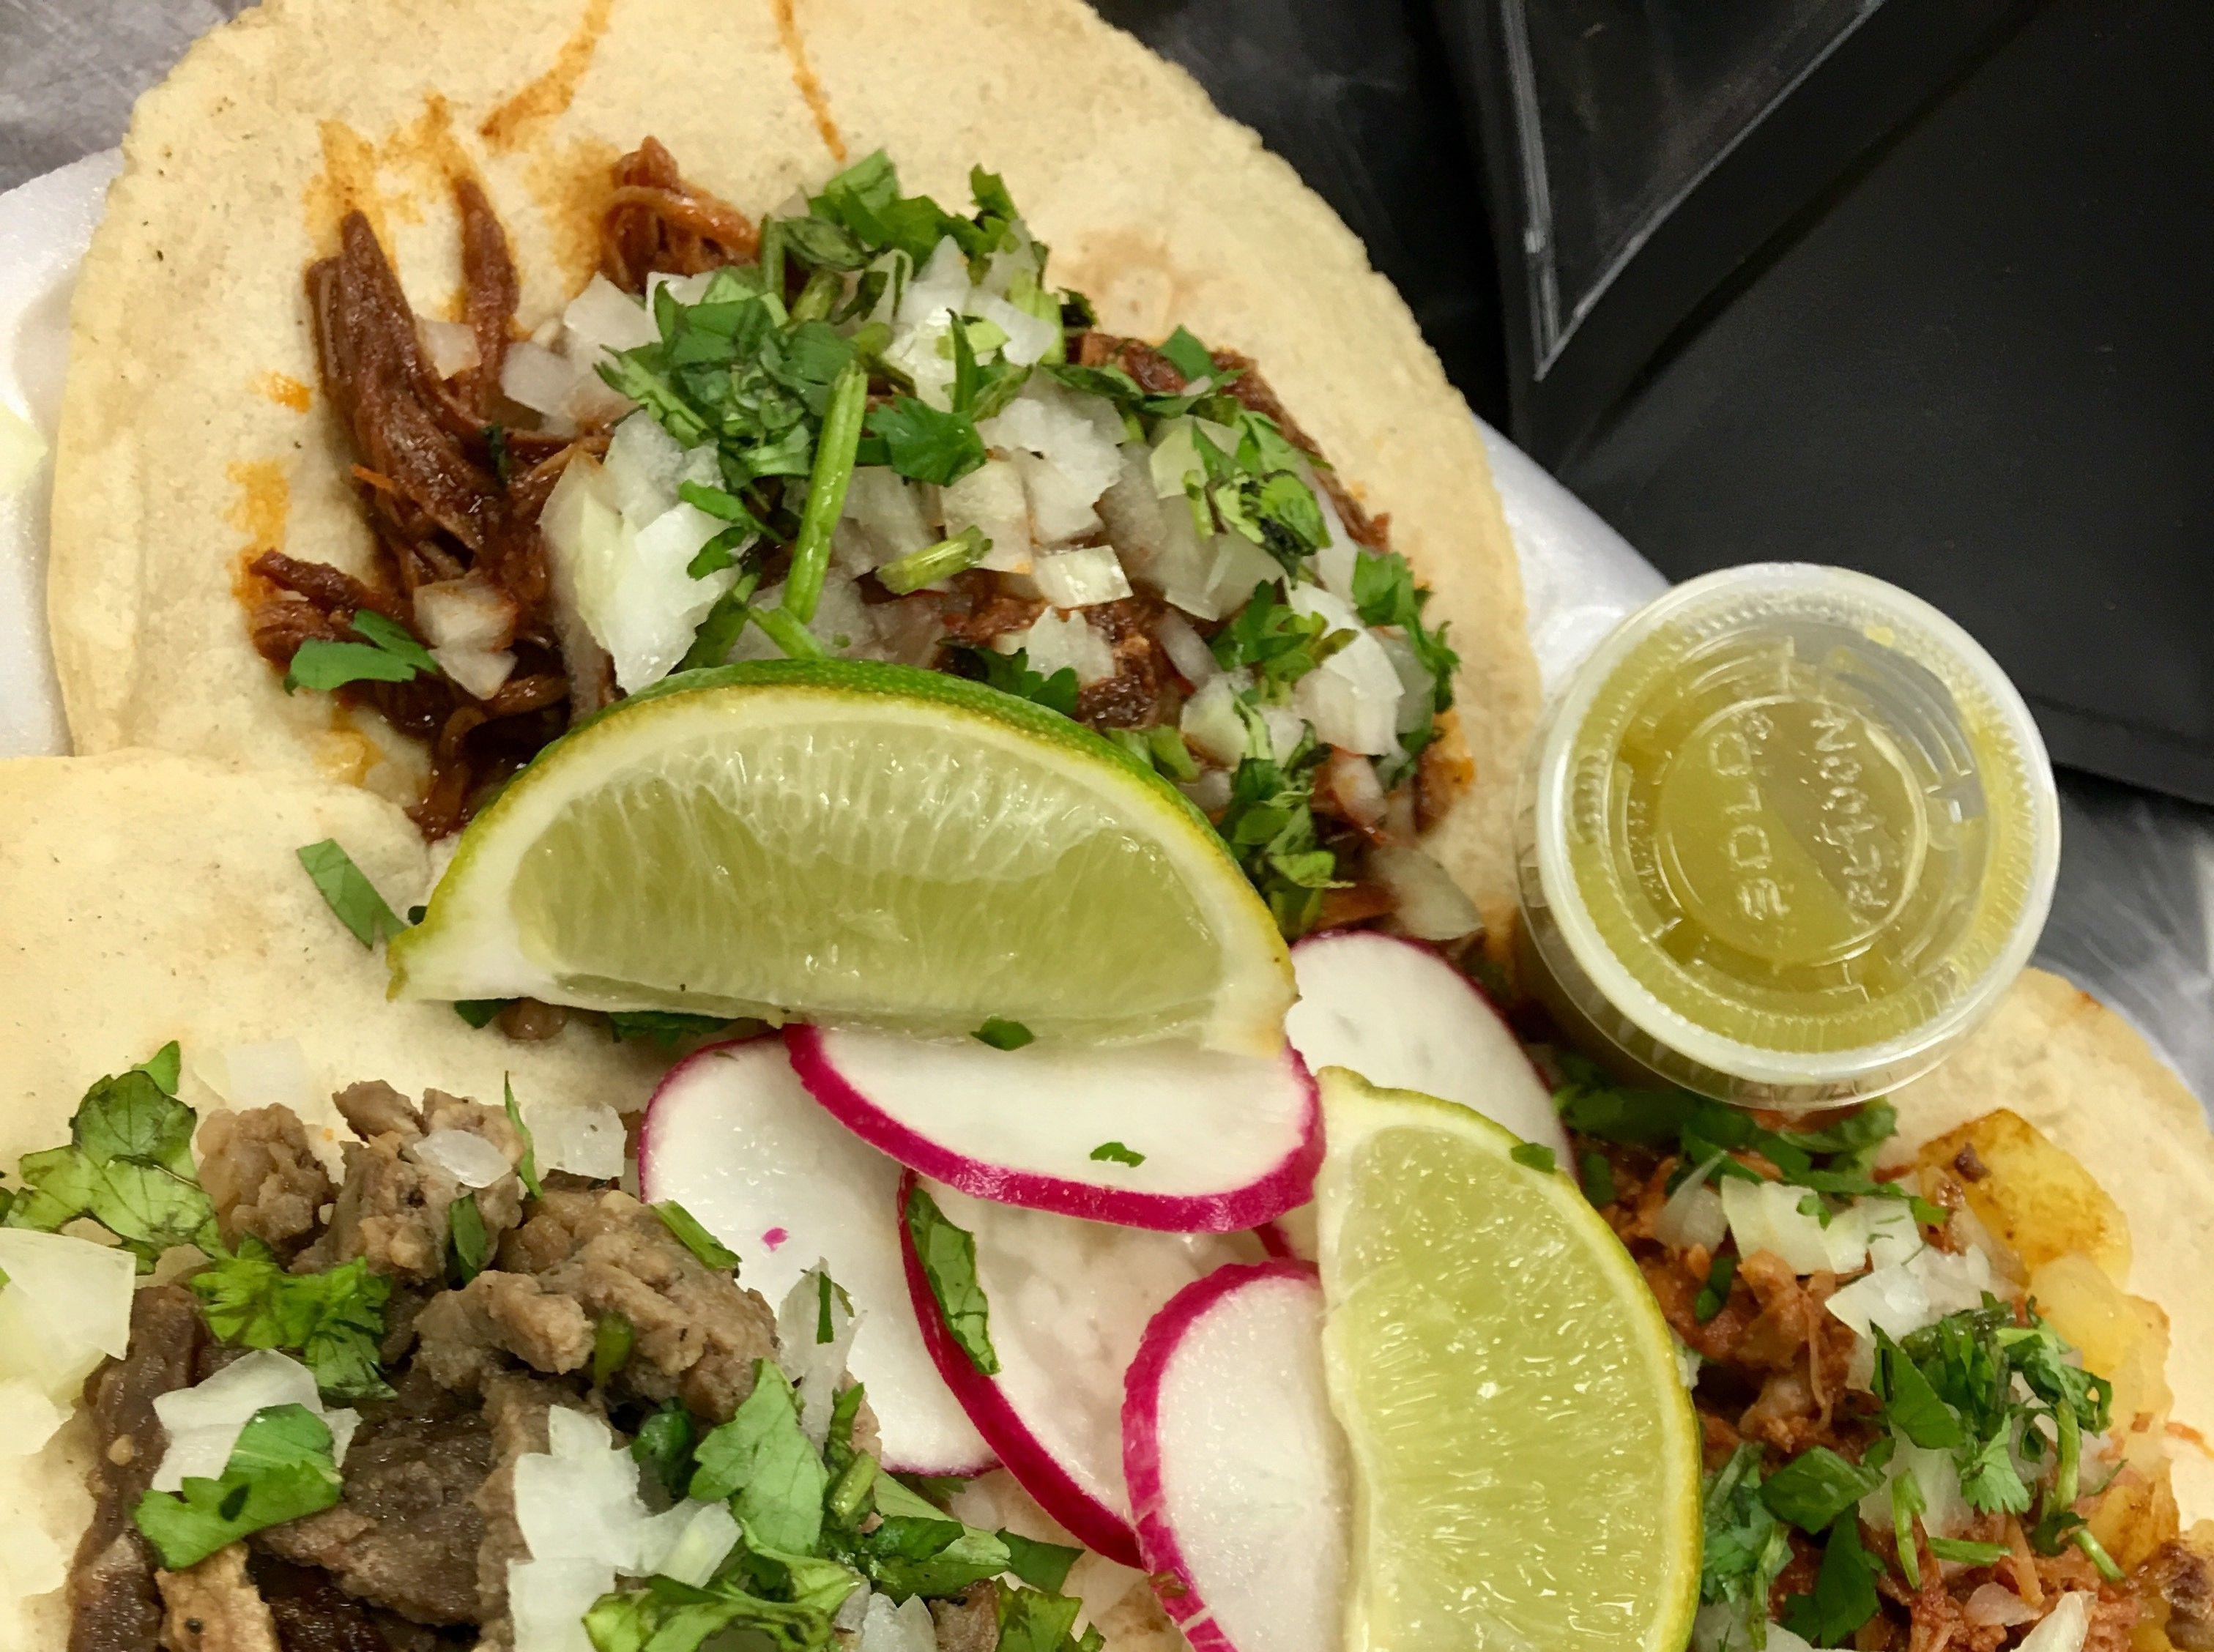 OPEN: Tacos at Sergio's Tacos in Viera come topped with onions and cilantro, with a mound of thin-sliced radishes in the center and a most welcome couple of wedges of lime, as well a small cup of zesty, Mexican-style green sauce.